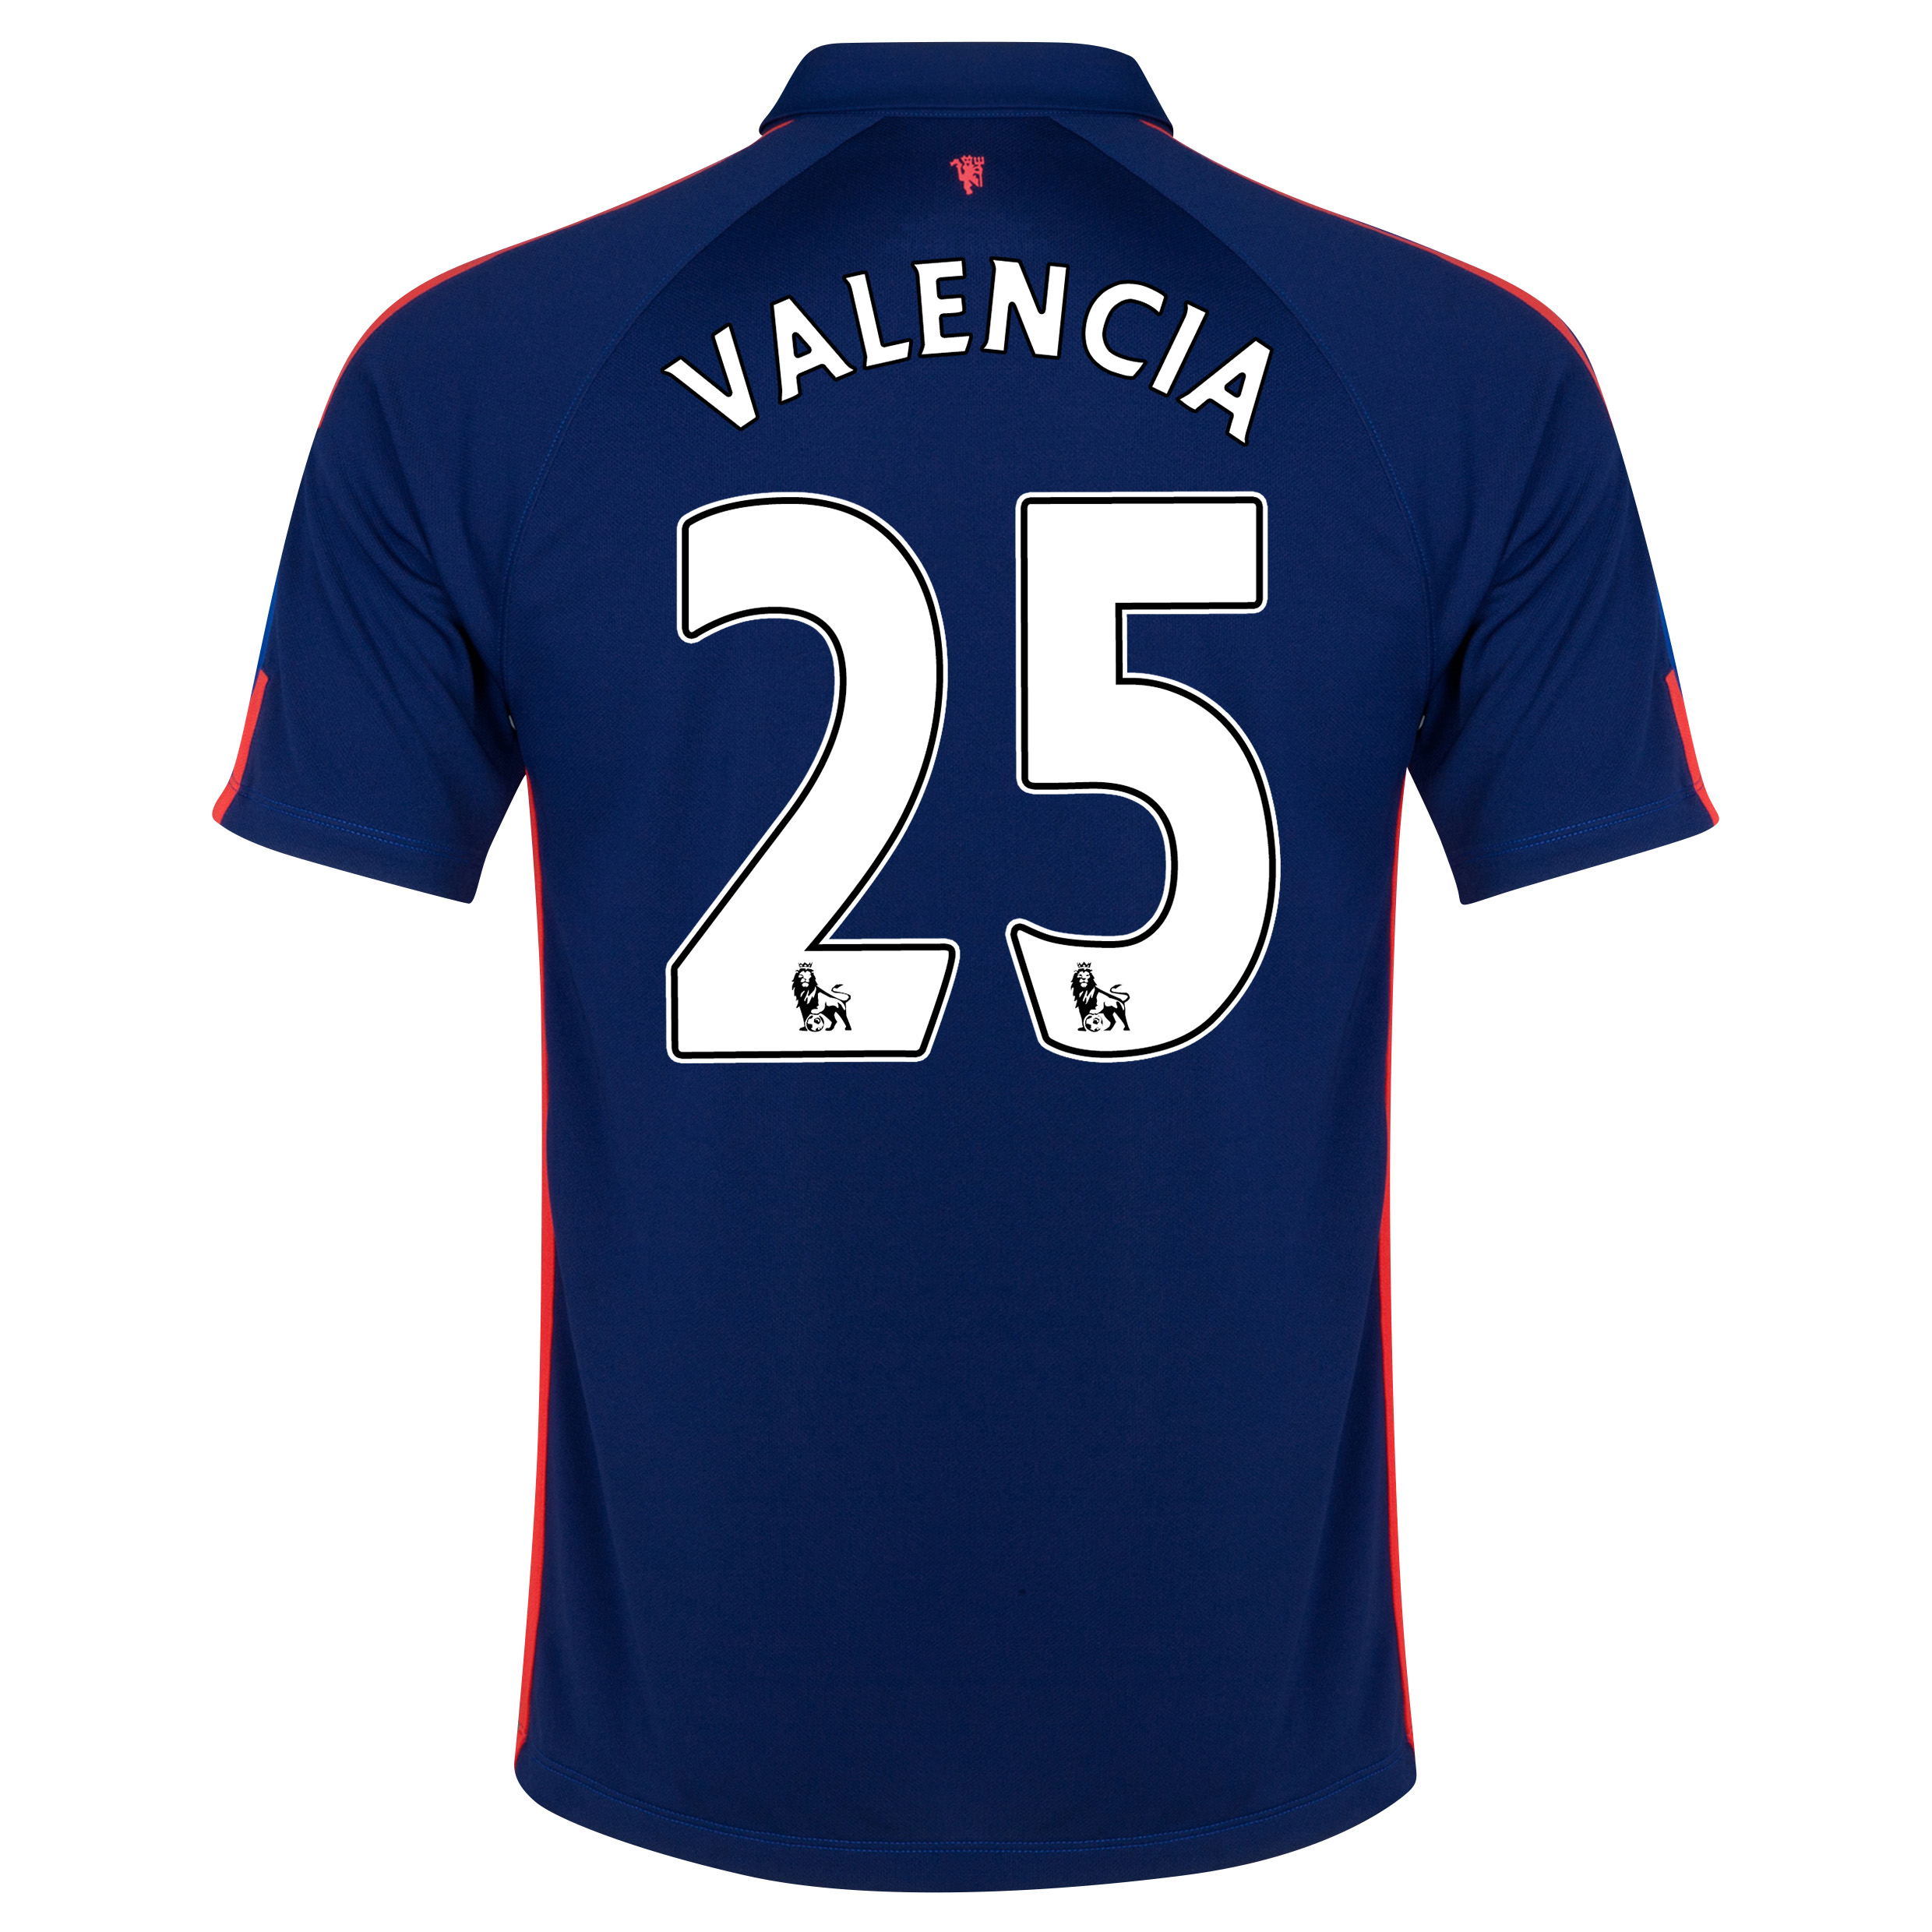 Manchester United Third Shirt 2014/15 with Valencia 25 printing